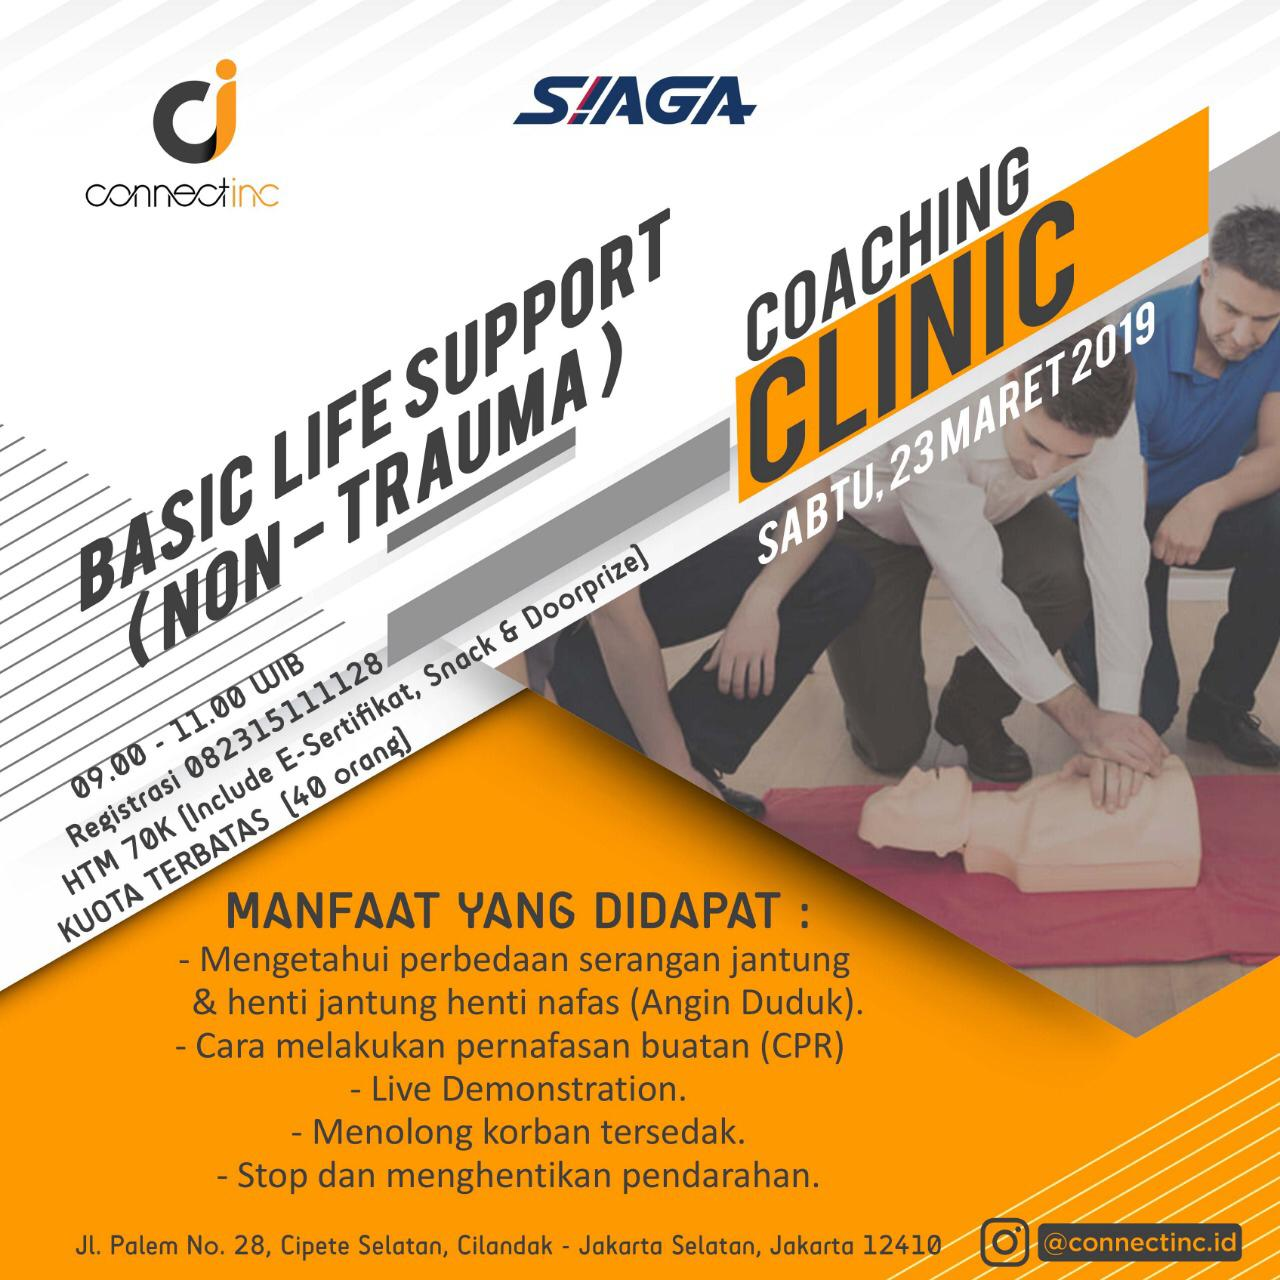 SIAGA – COACHING CLINIC